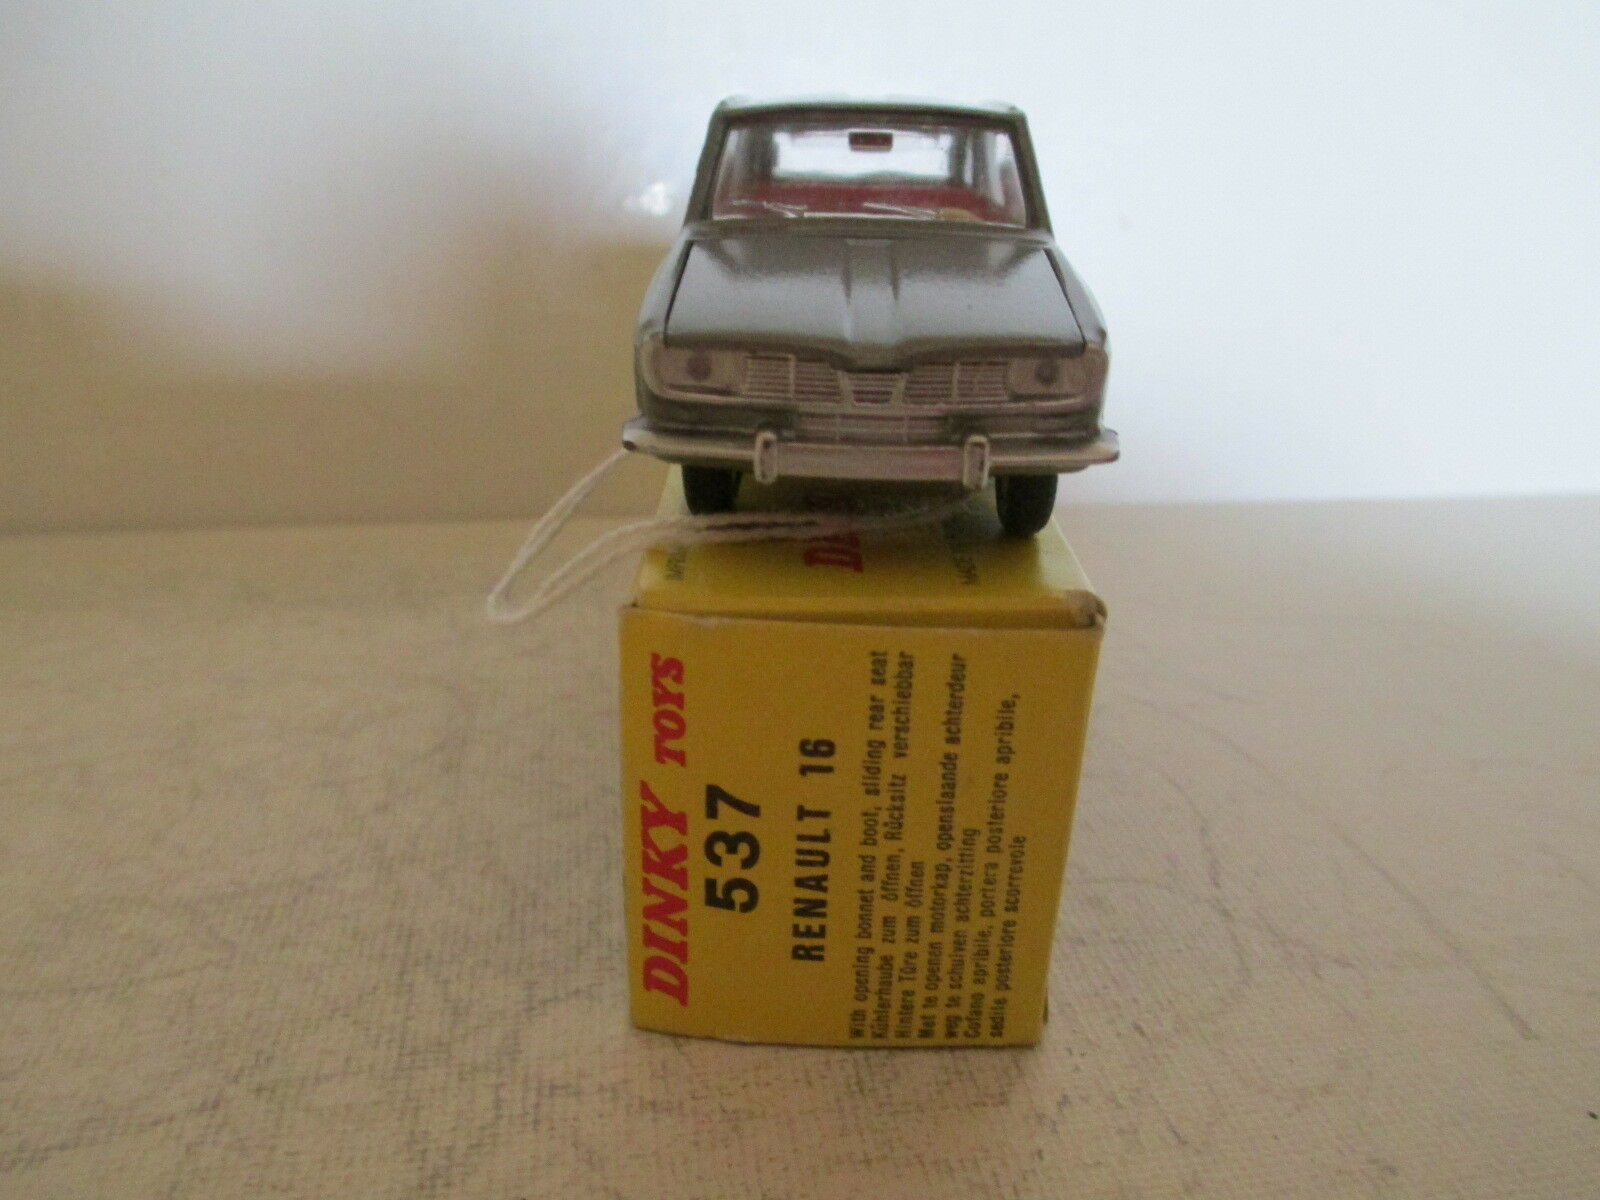 FRENCH FRENCH FRENCH DINKY 537 RENAULT 16 R16 MIB 9 EN BOITE VERY NICE L@@K 29f328